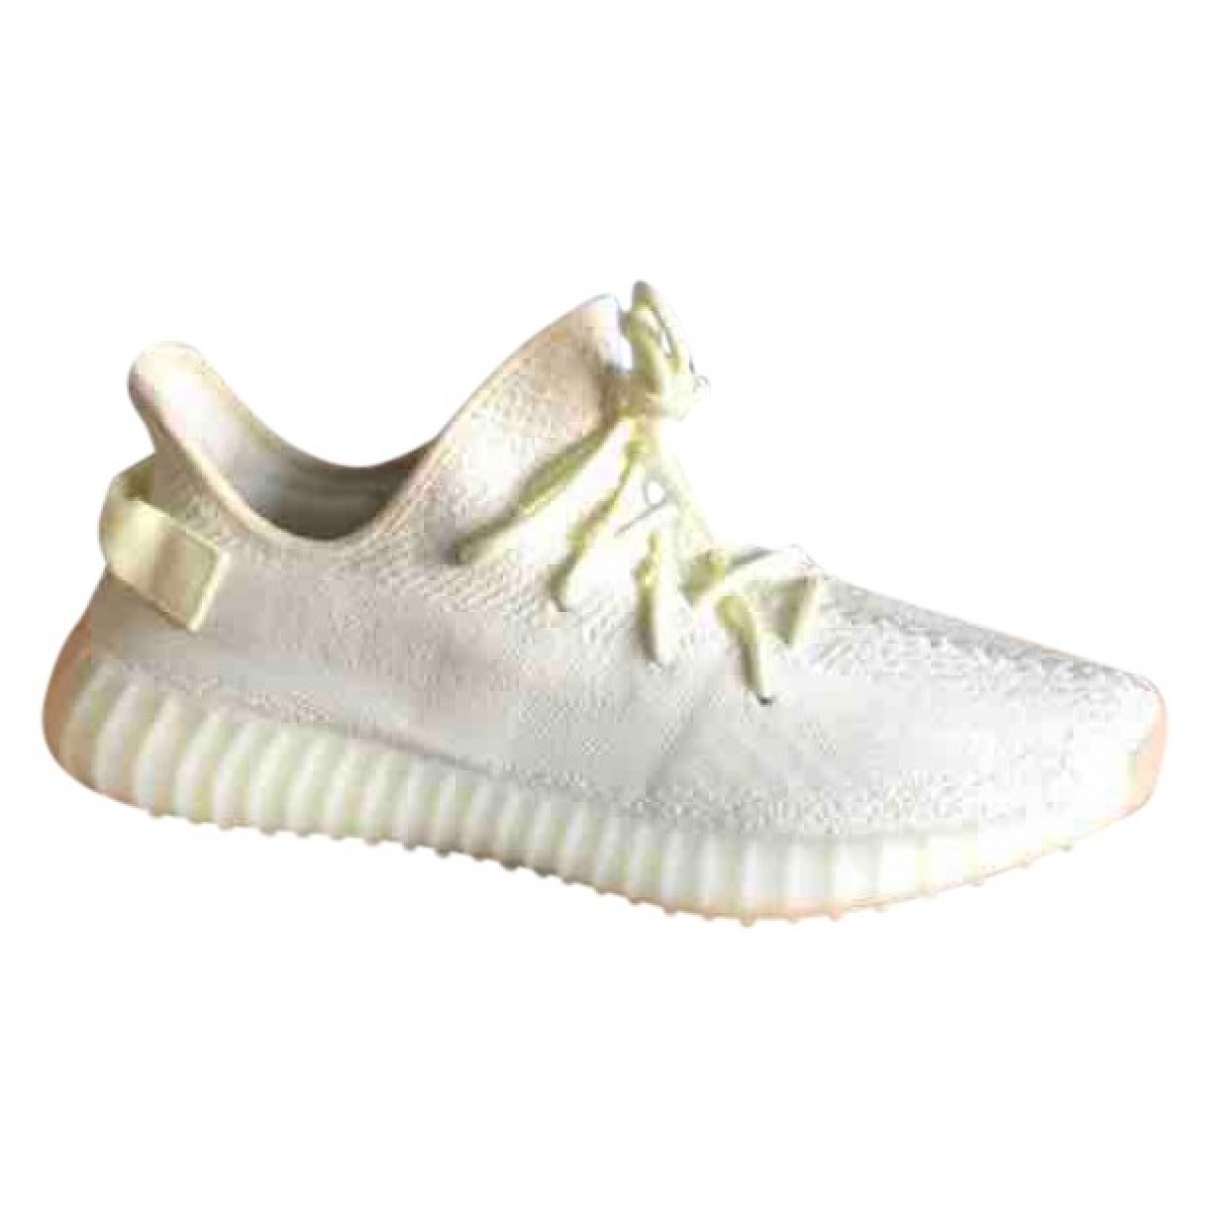 Yeezy X Adidas Boost 350 V2 Yellow Trainers for Men 46 EU